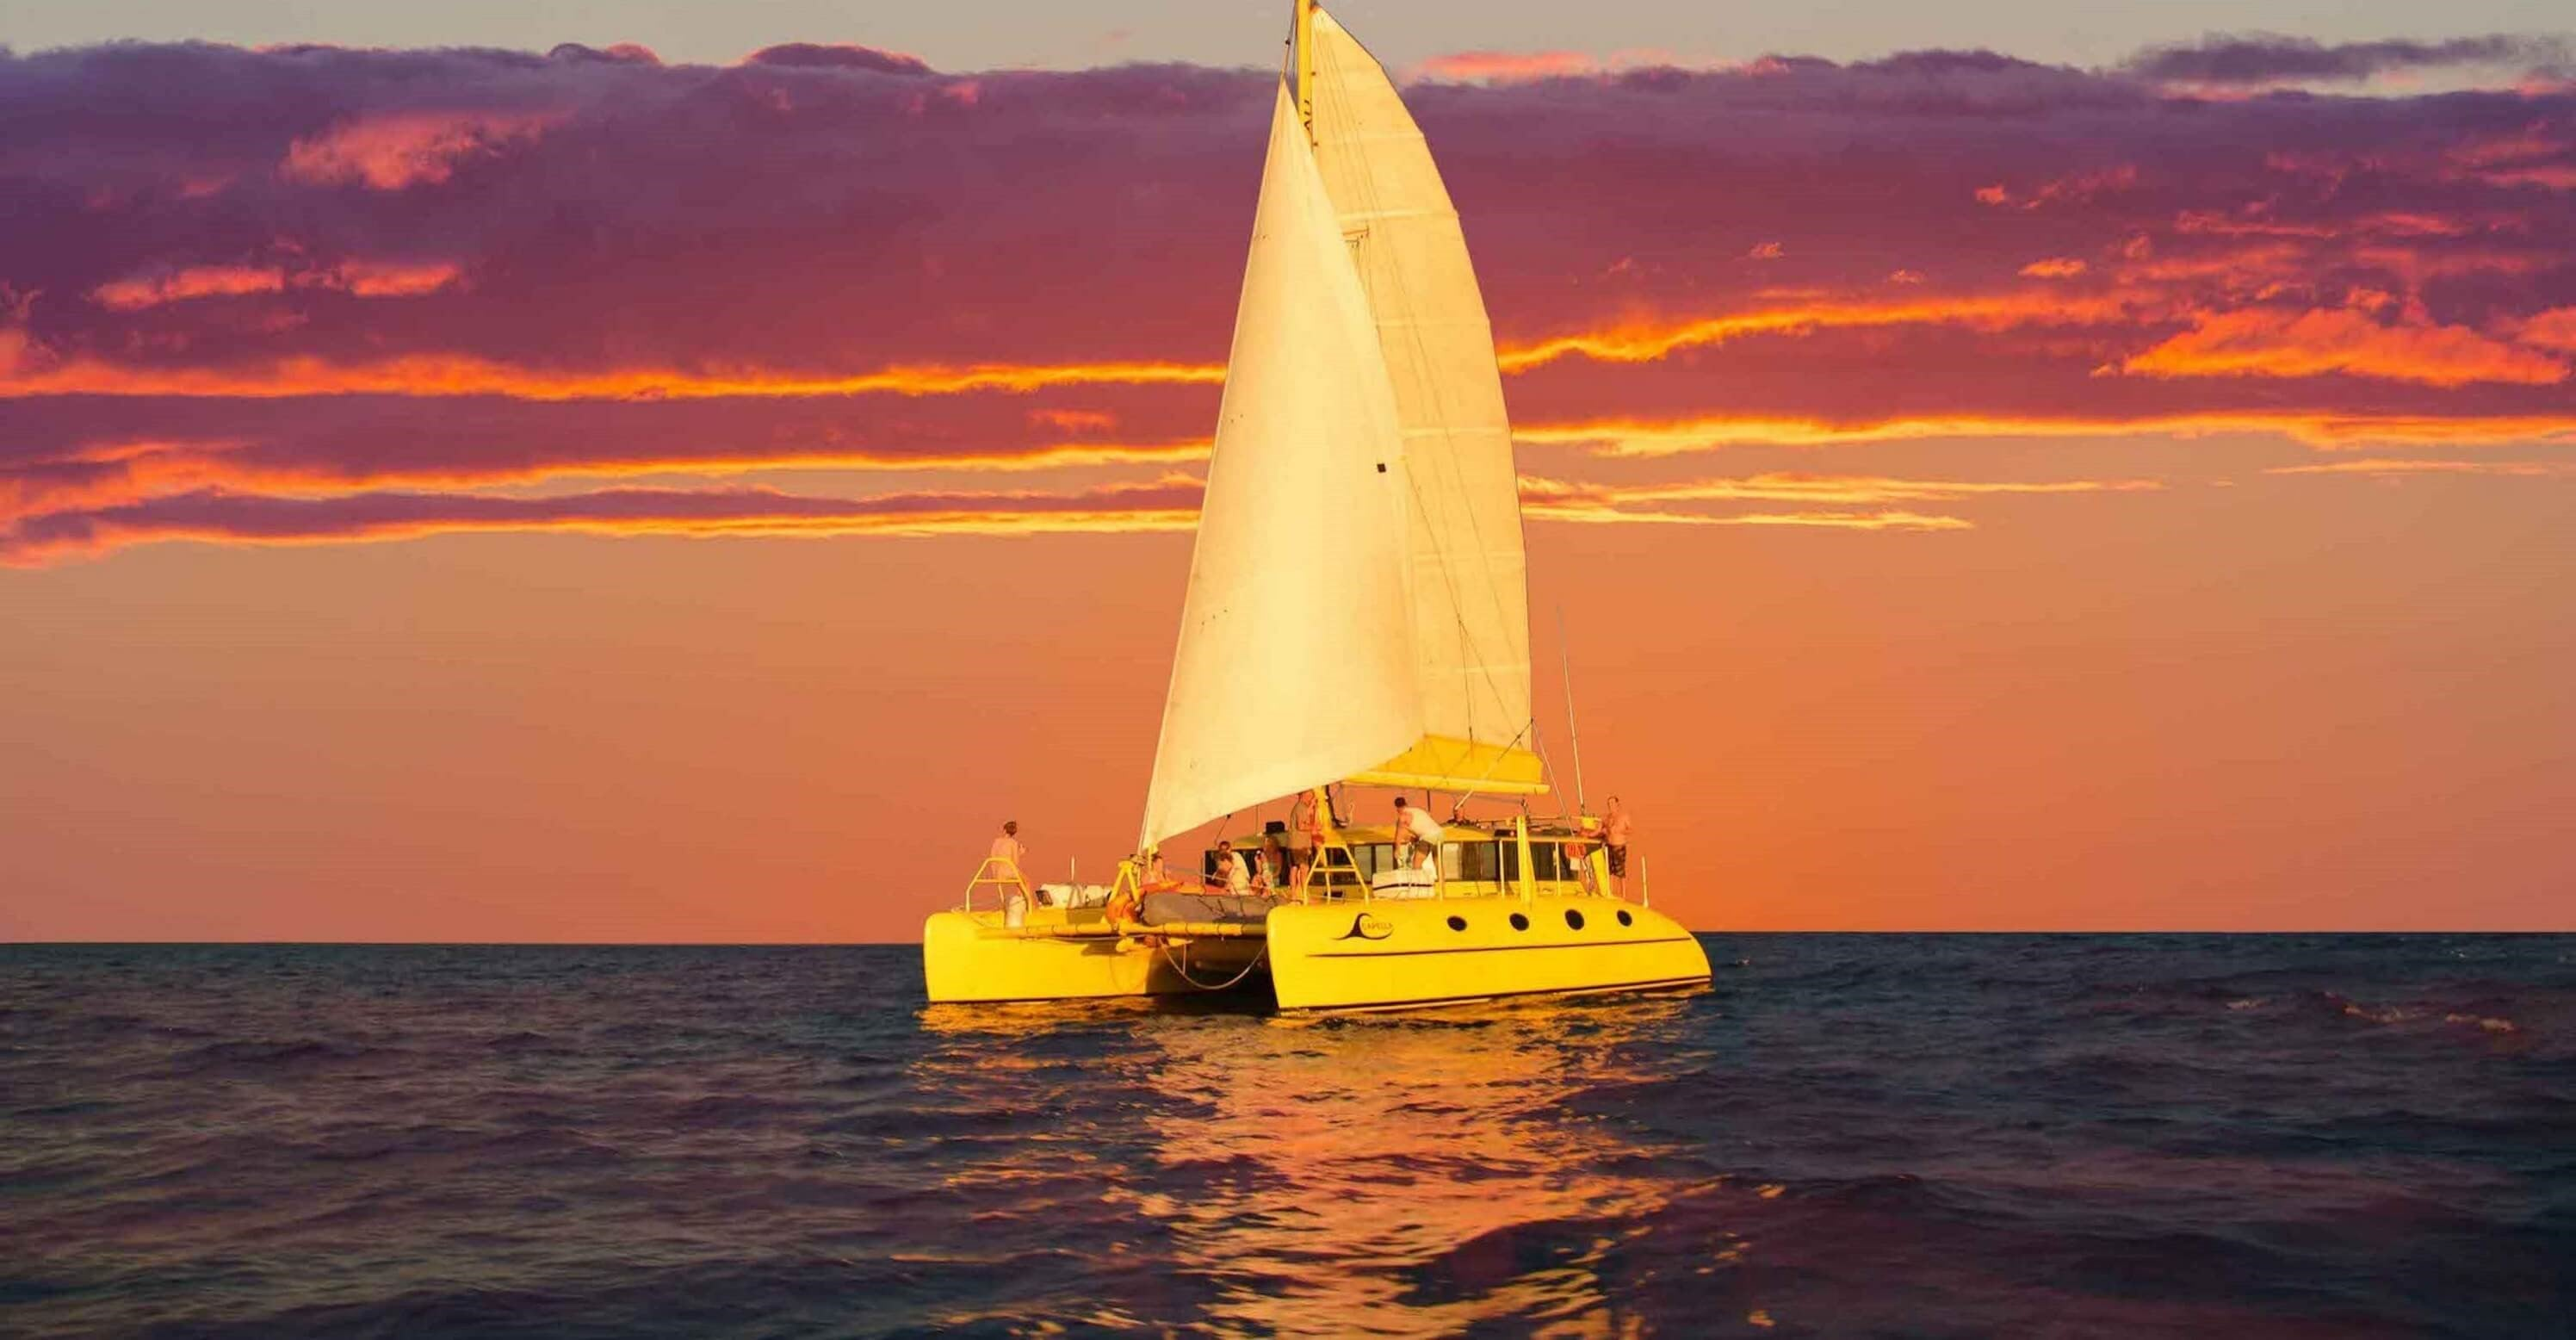 Sunset Twilight Sailing Fremantle Perth Western Australia